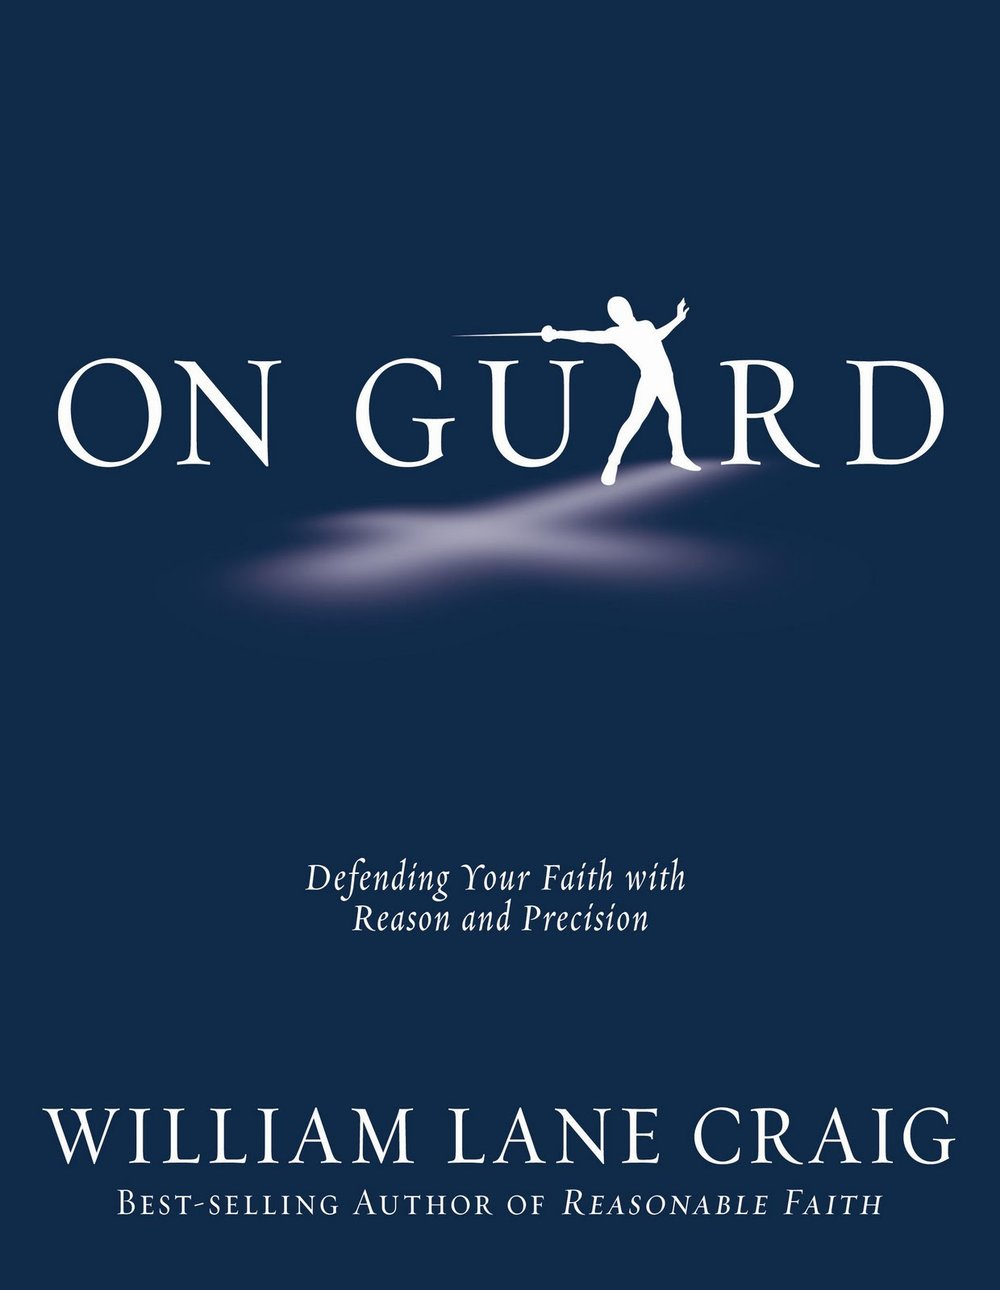 On Guard - This concise training manual by a renowned scholar is filled with illustrations, sidebars, and memorizable steps to help you stand your ground and defend your faith with reason and precision. In his engaging style, Dr. William Lane Craig offers four arguments for God's existence, defends the historicity of Jesus' personal claims and resurrection, addresses the problem of suffering, and shows why religious relativism doesn't work. Along the way, he shares his own story of following God's call. This one-stop, how-to-defend-your-faith manual will equip you to advance faith conversations deliberately, applying straightforward, cool-headed arguments. You will discover not just what you believe, but why you believe—and how being On Guard with the truth has the power to change lives forever.Click here to purchase from Koorong